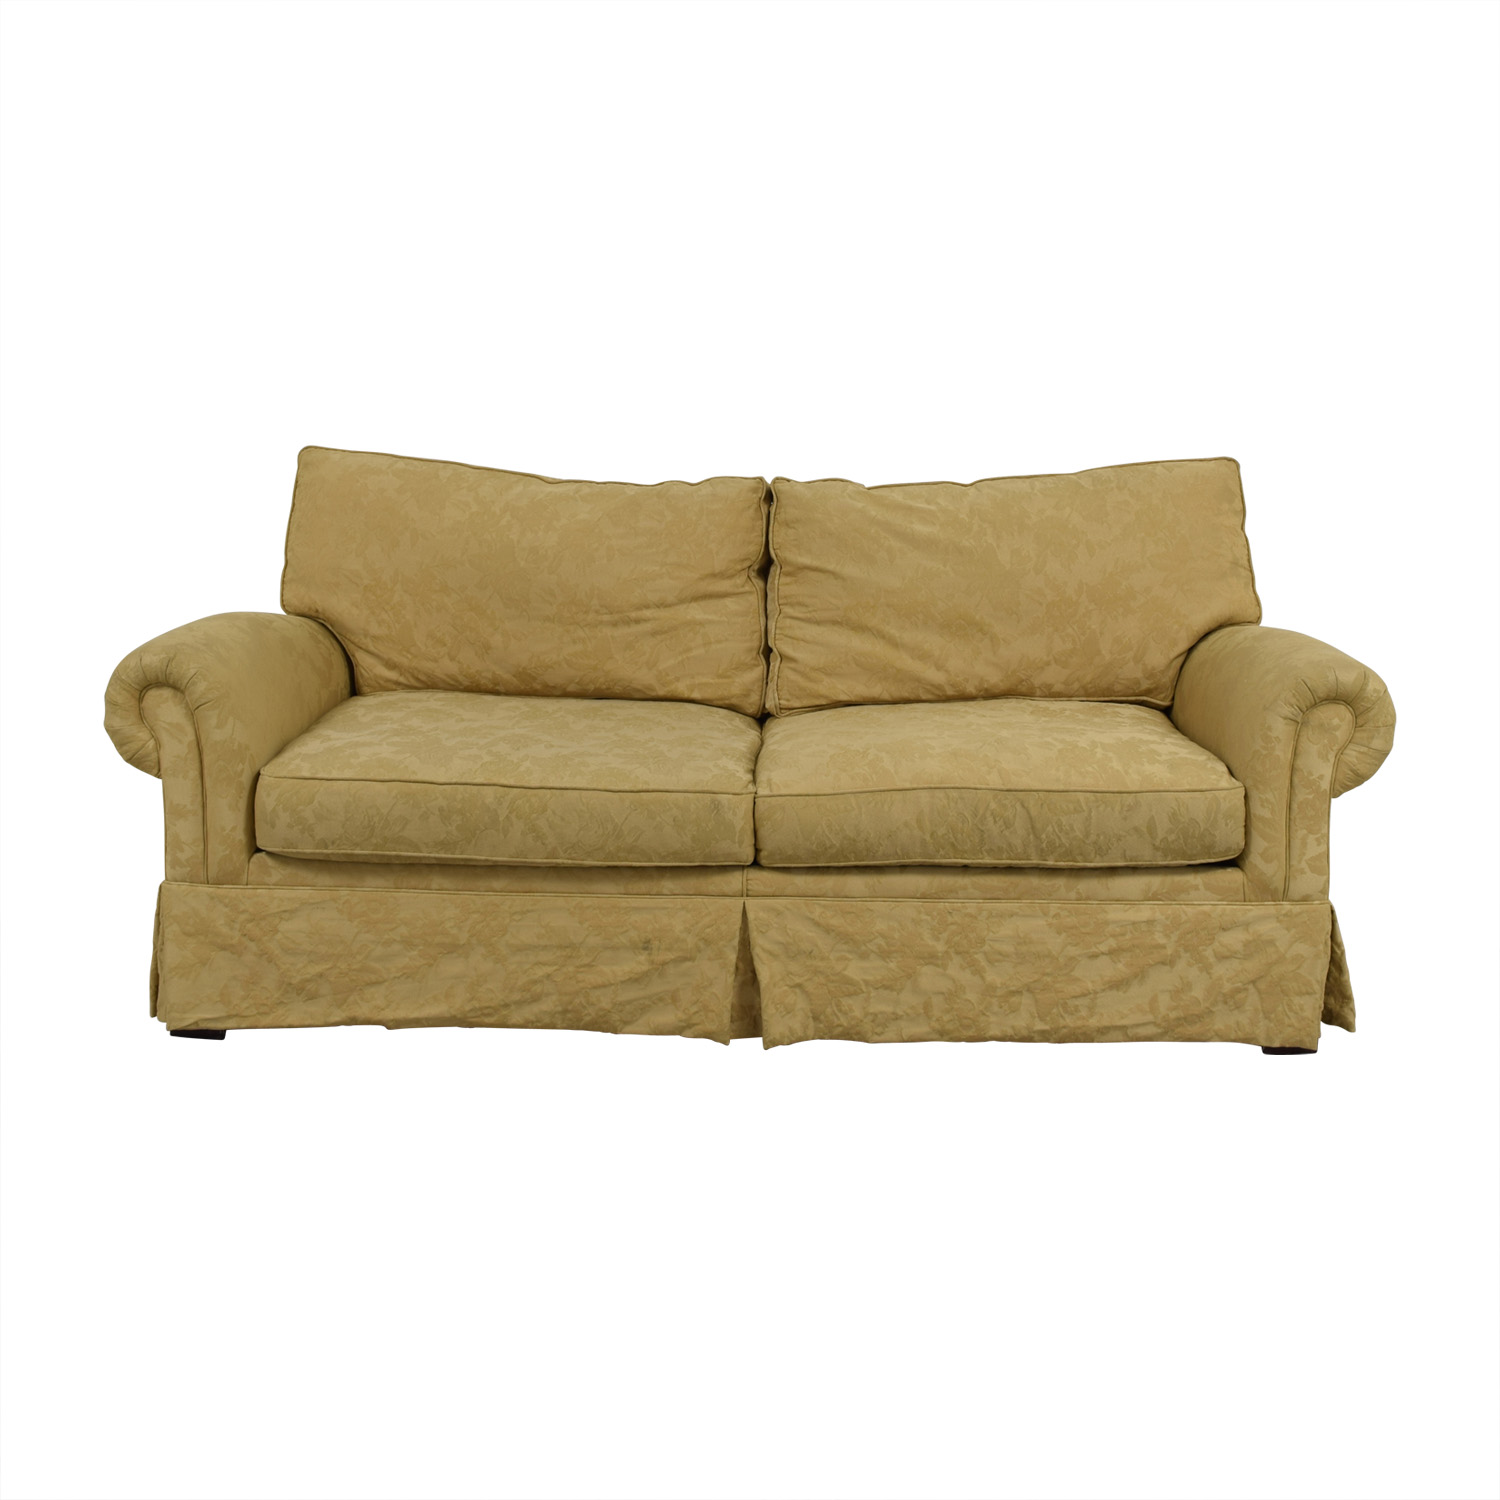 Burnheardt Burnheardt Tan Jacquard Two-Cushion Couch discount